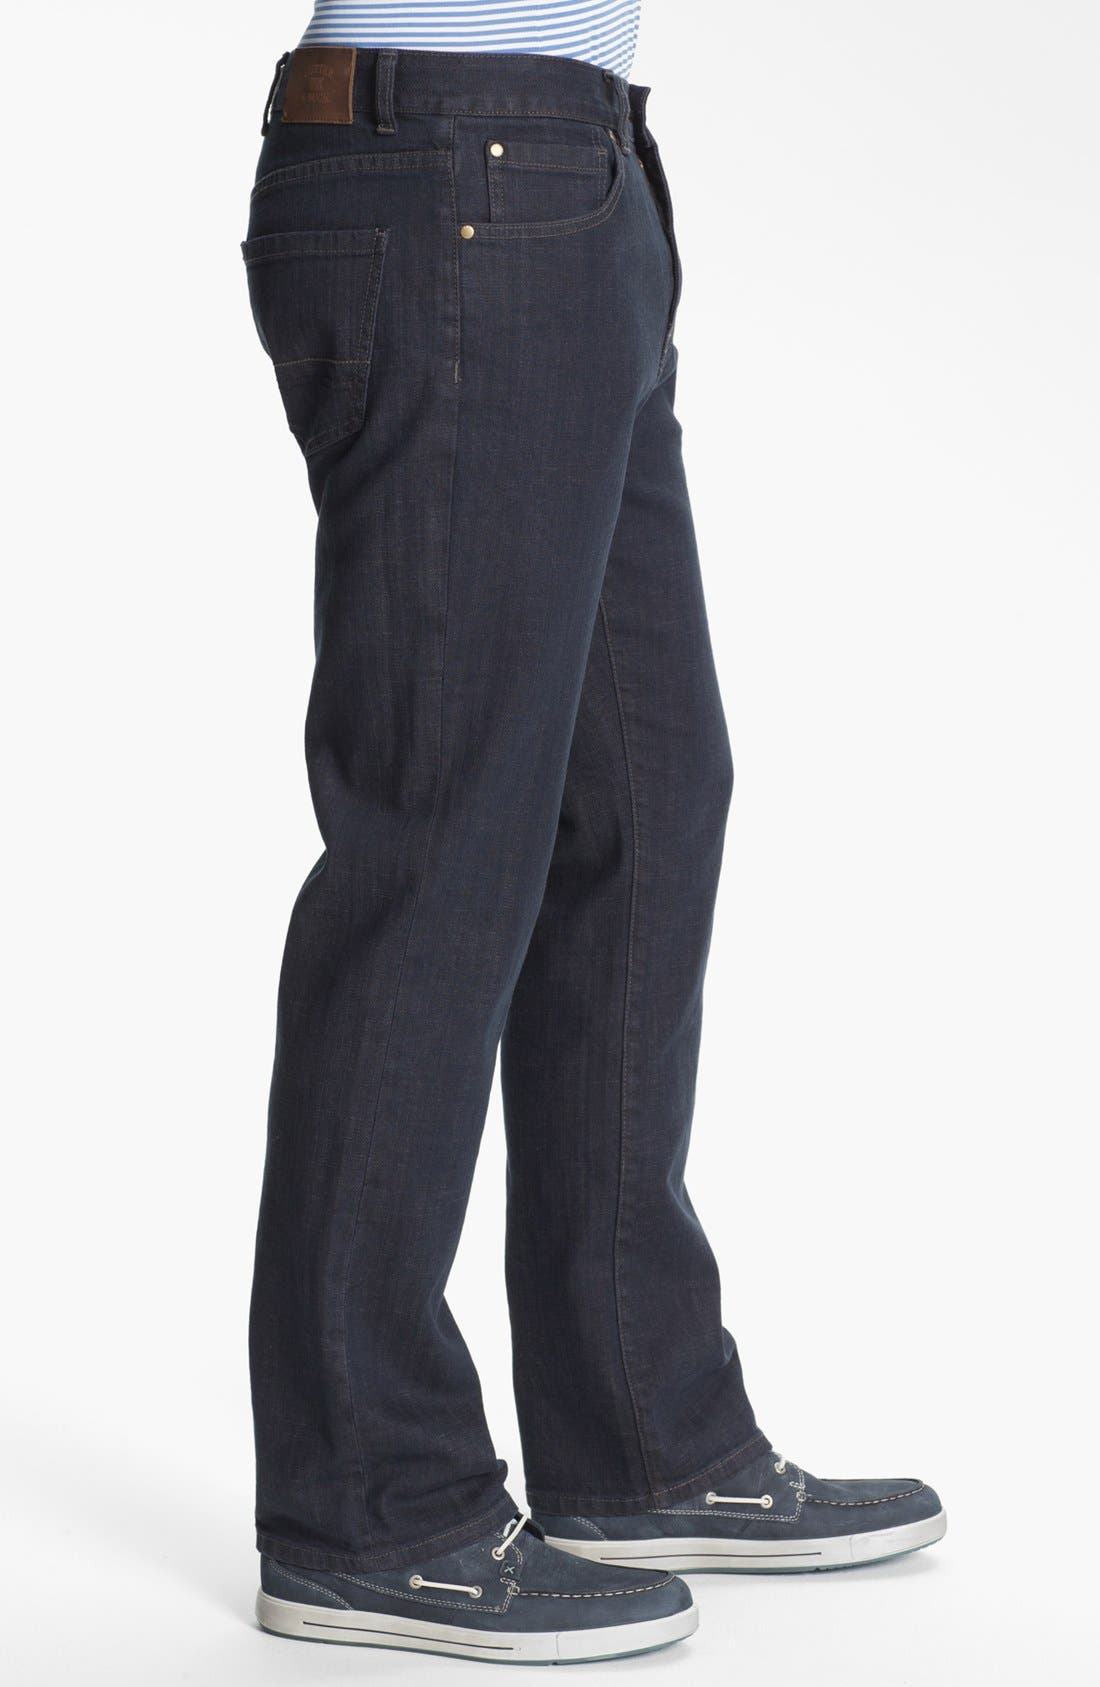 Alternate Image 3  - Cutter & Buck 'Madison Park' Jeans (Carbon) (Big & Tall)